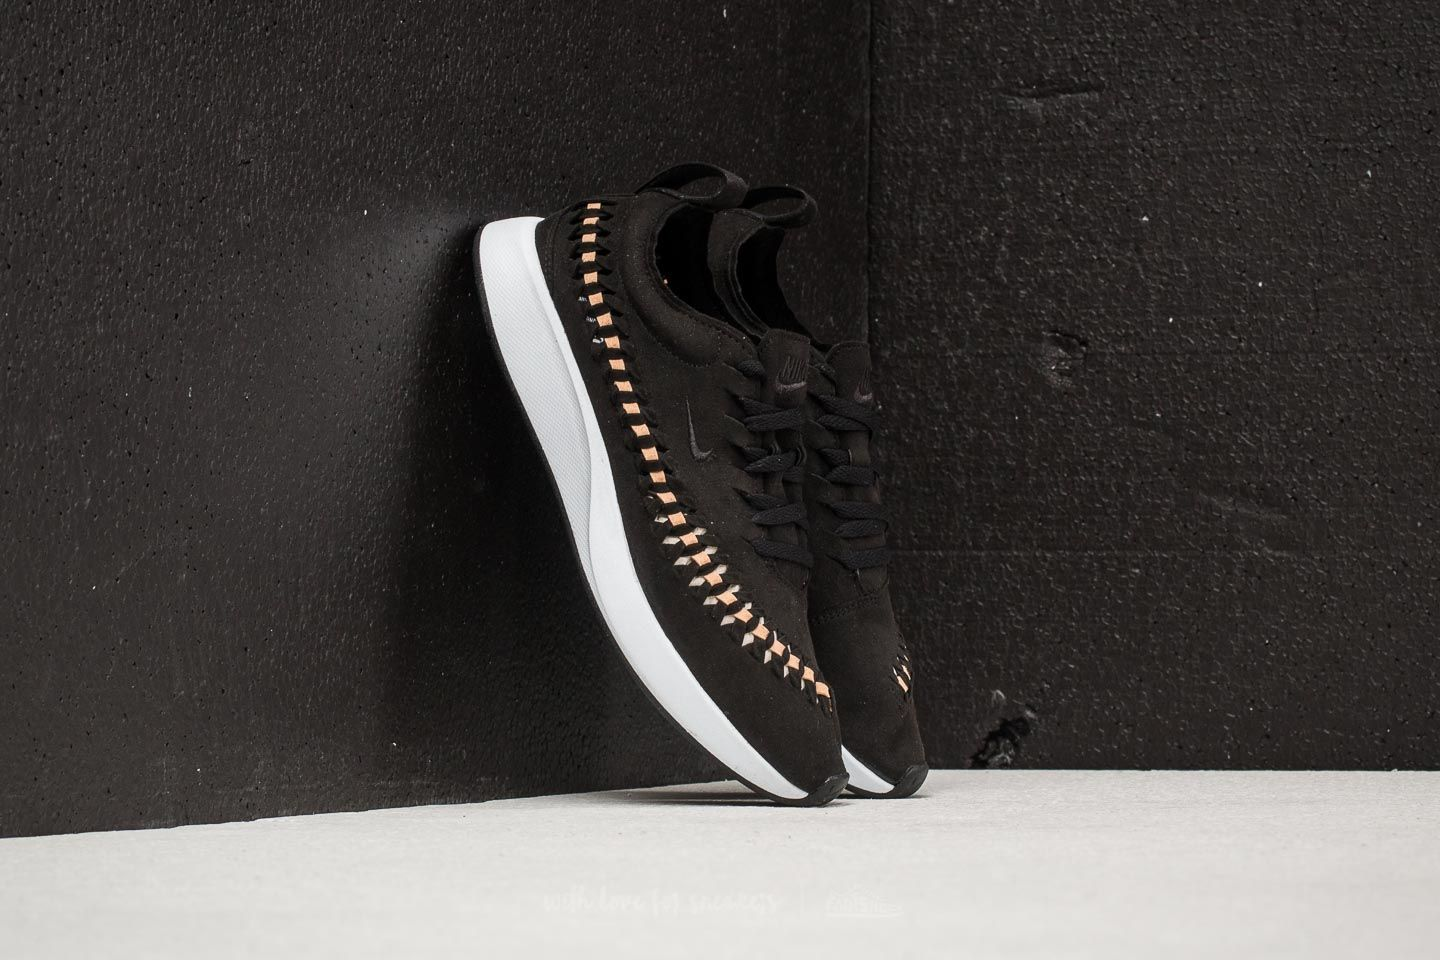 Women's shoes Nike W Dualtone Racer Woven Black/ Black-Vachetta Tan-White